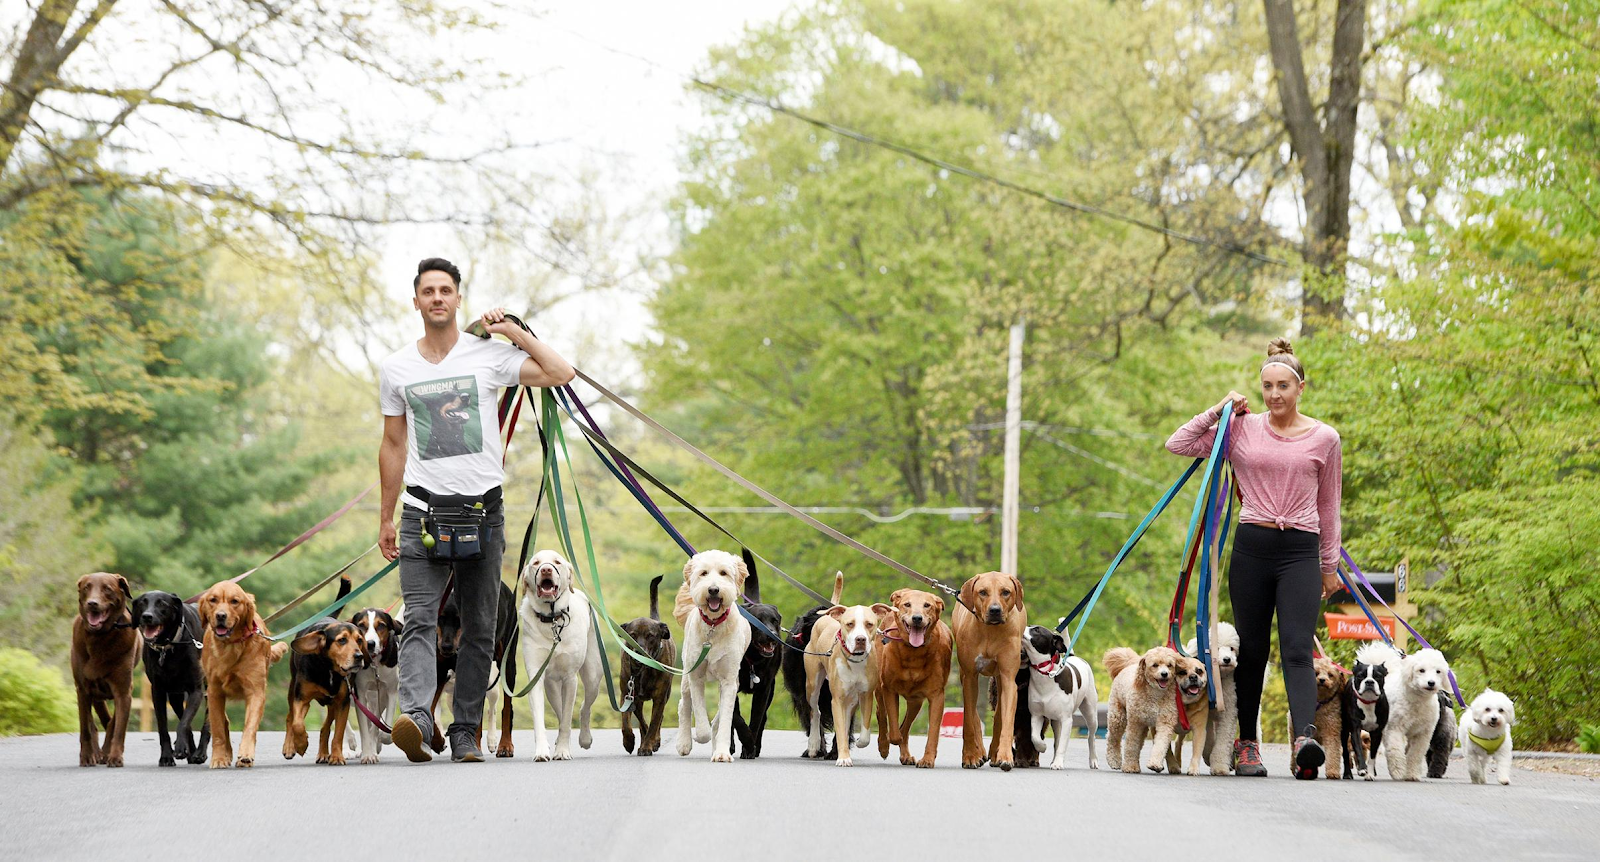 Male and female dog walkers walking a line up of different breeds down concrete road